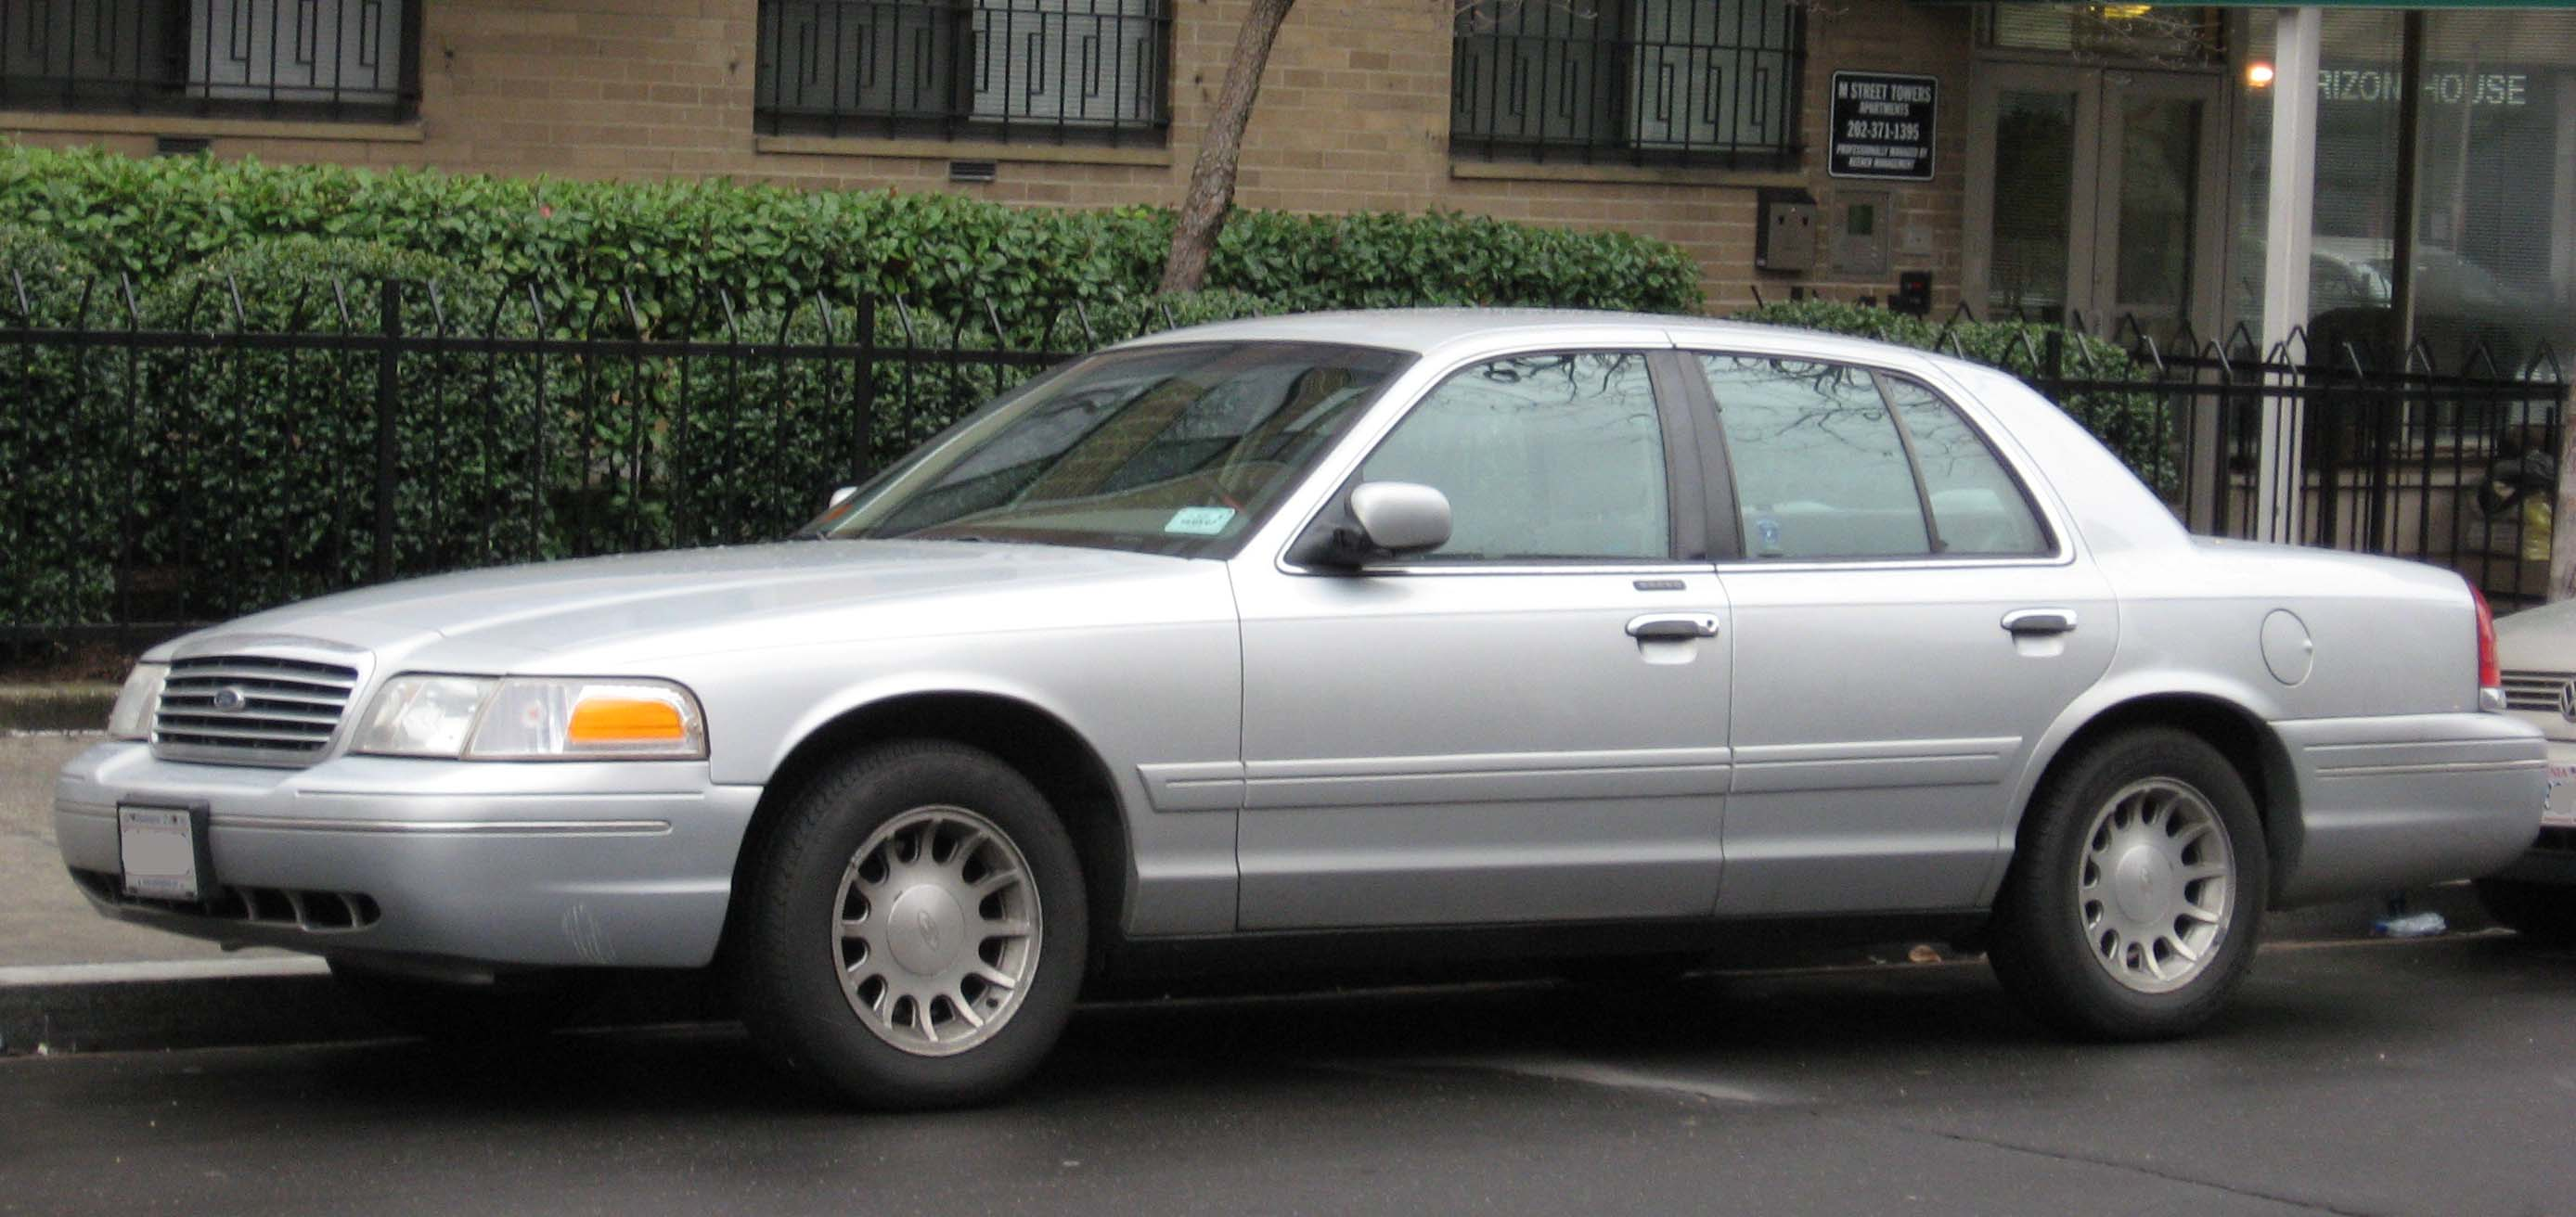 2009 Ford Crown Victoria #14